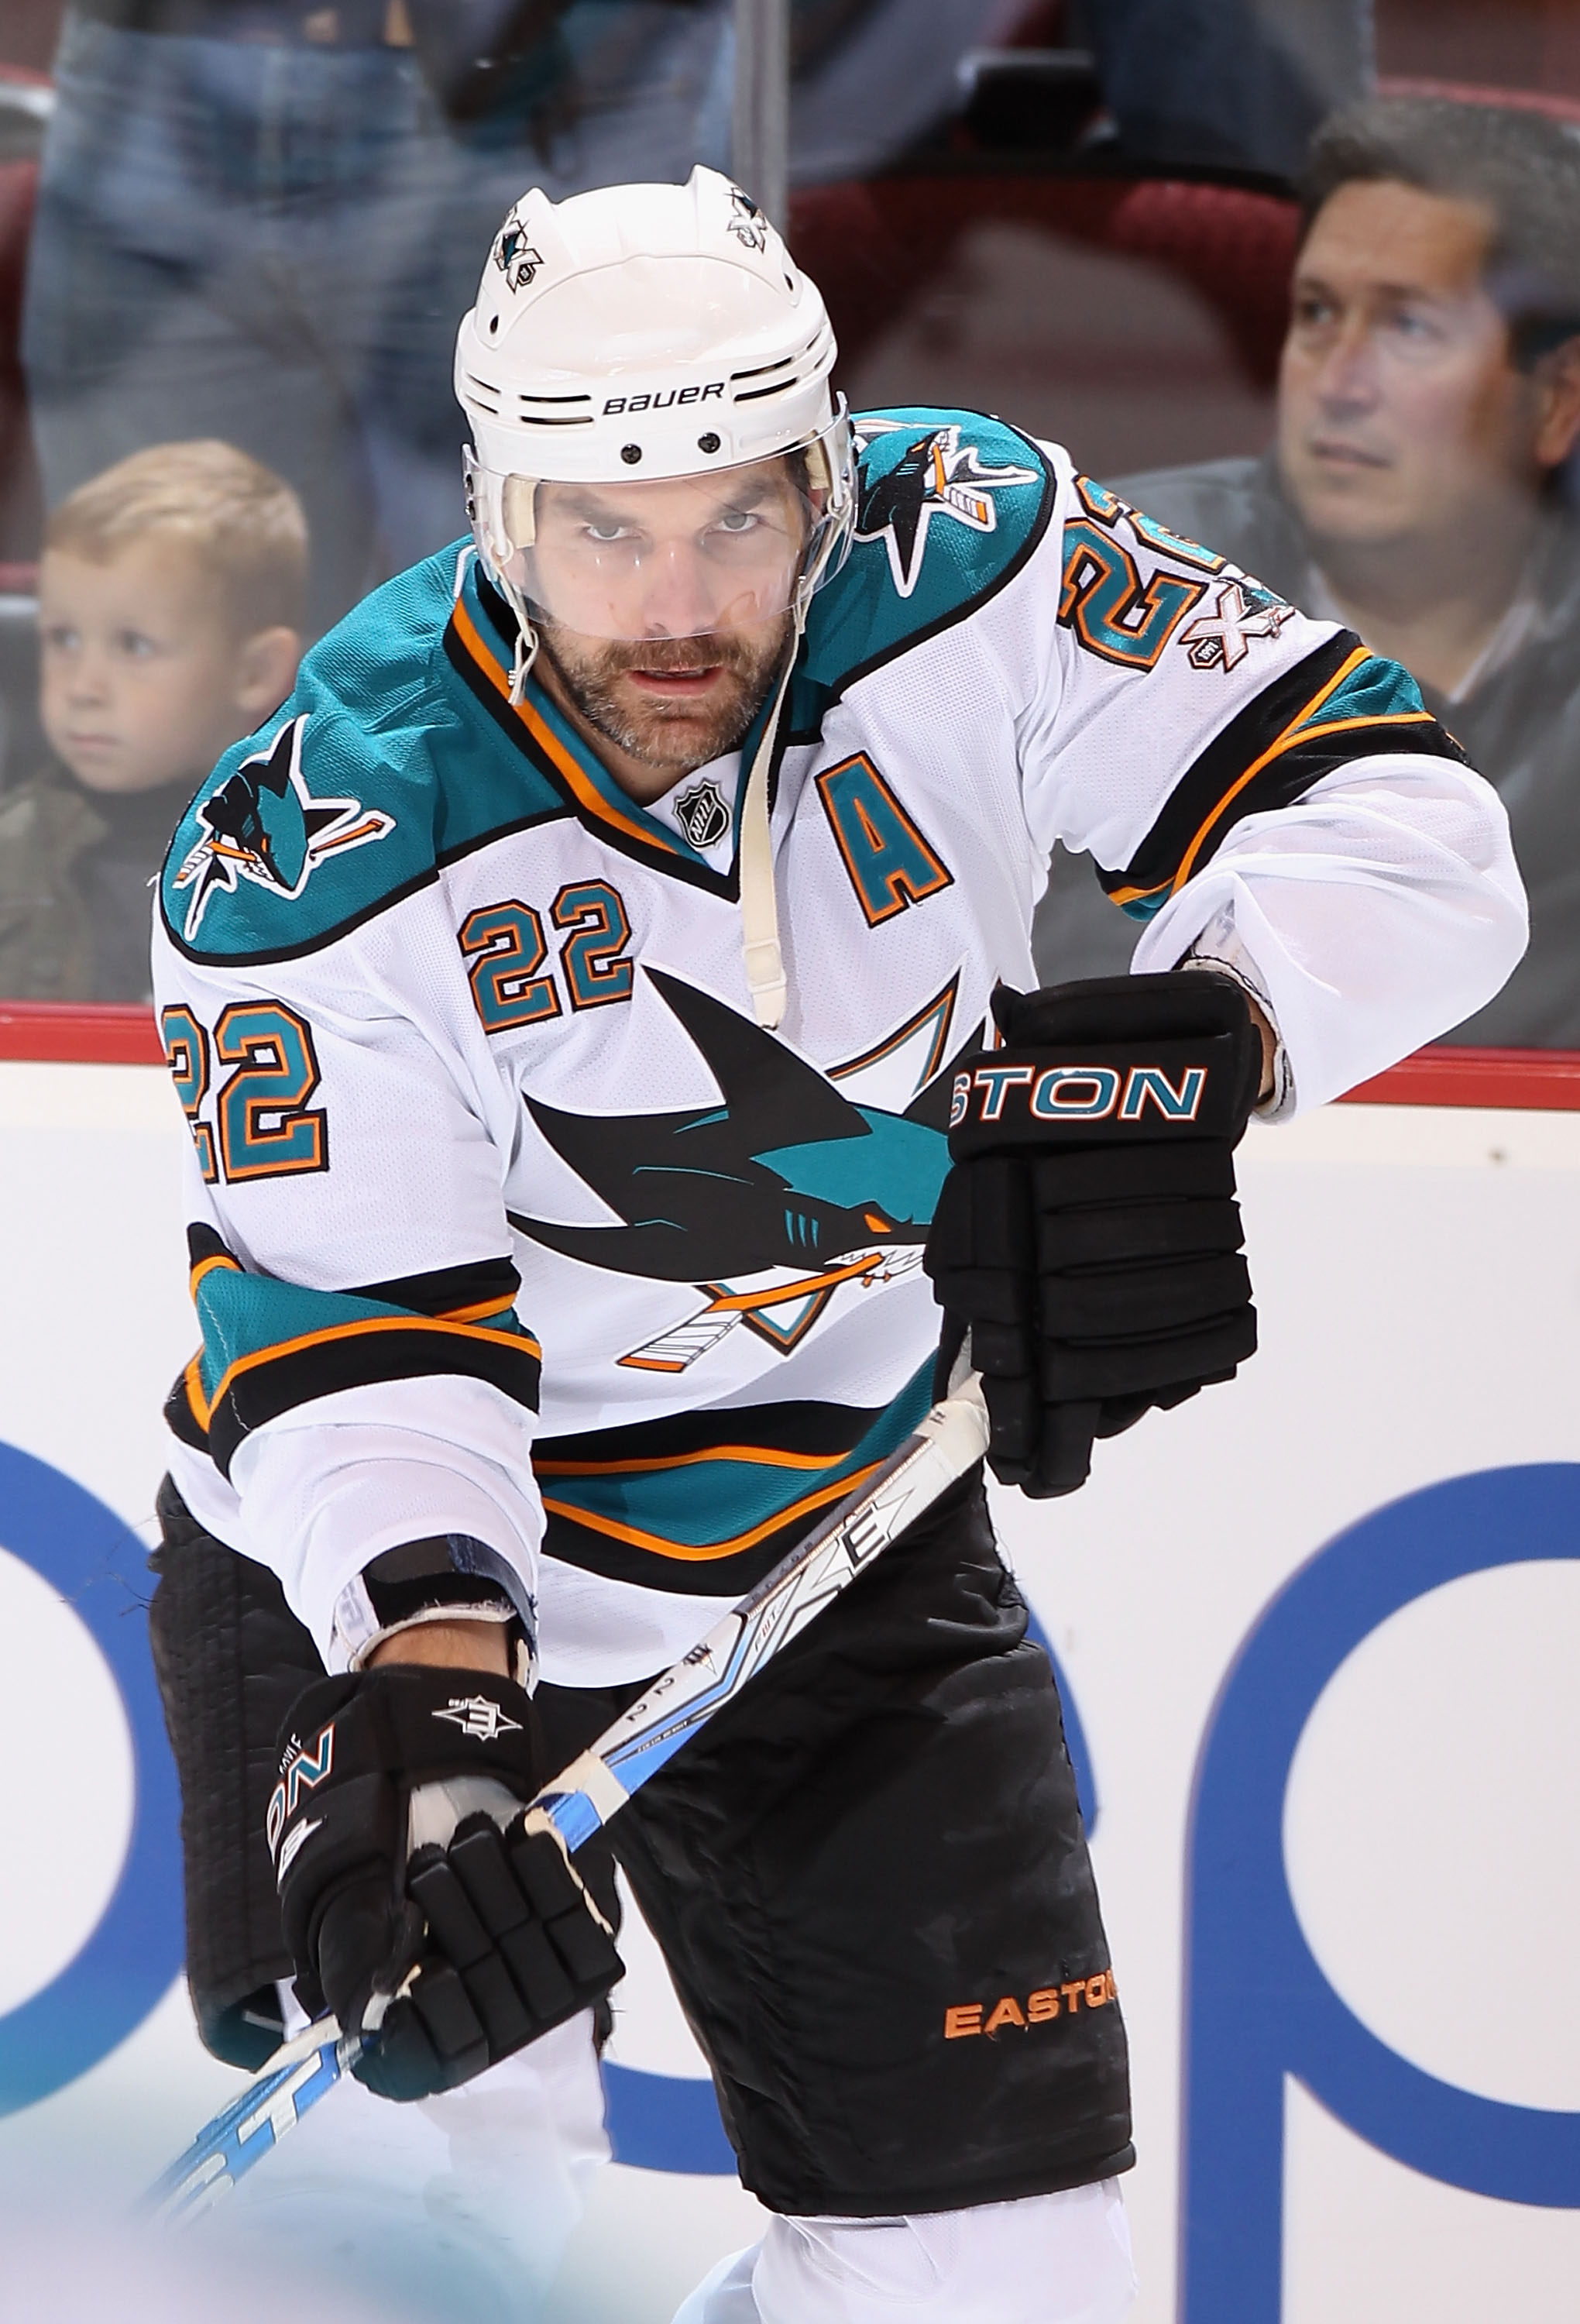 GLENDALE, AZ - MARCH 26:  Dan Boyle #22 of the San Jose Sharks warms up before the NHL game against the Phoenix Coyotes at Jobing.com Arena on March 26, 2011 in Glendale, Arizona.  The Sharks defeated the Coyotes 4-1. (Photo by Christian Petersen/Getty Im